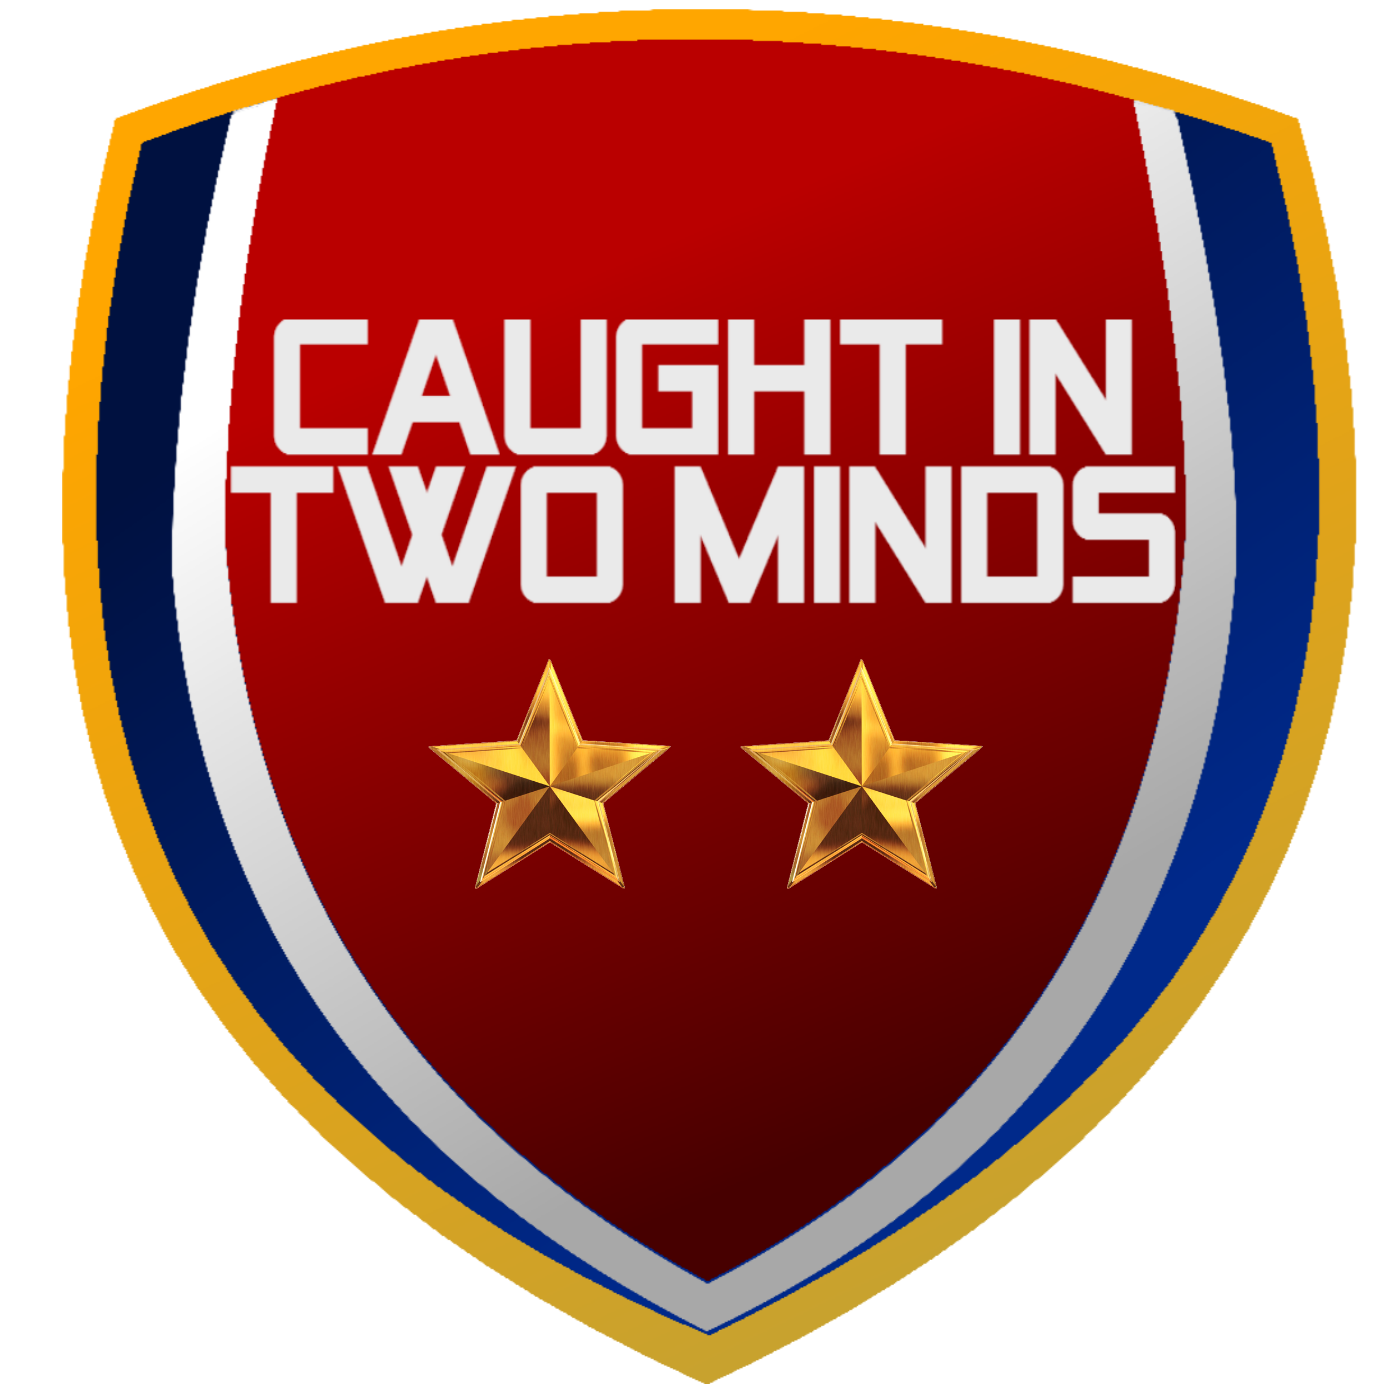 18 - Caught In Two Minds